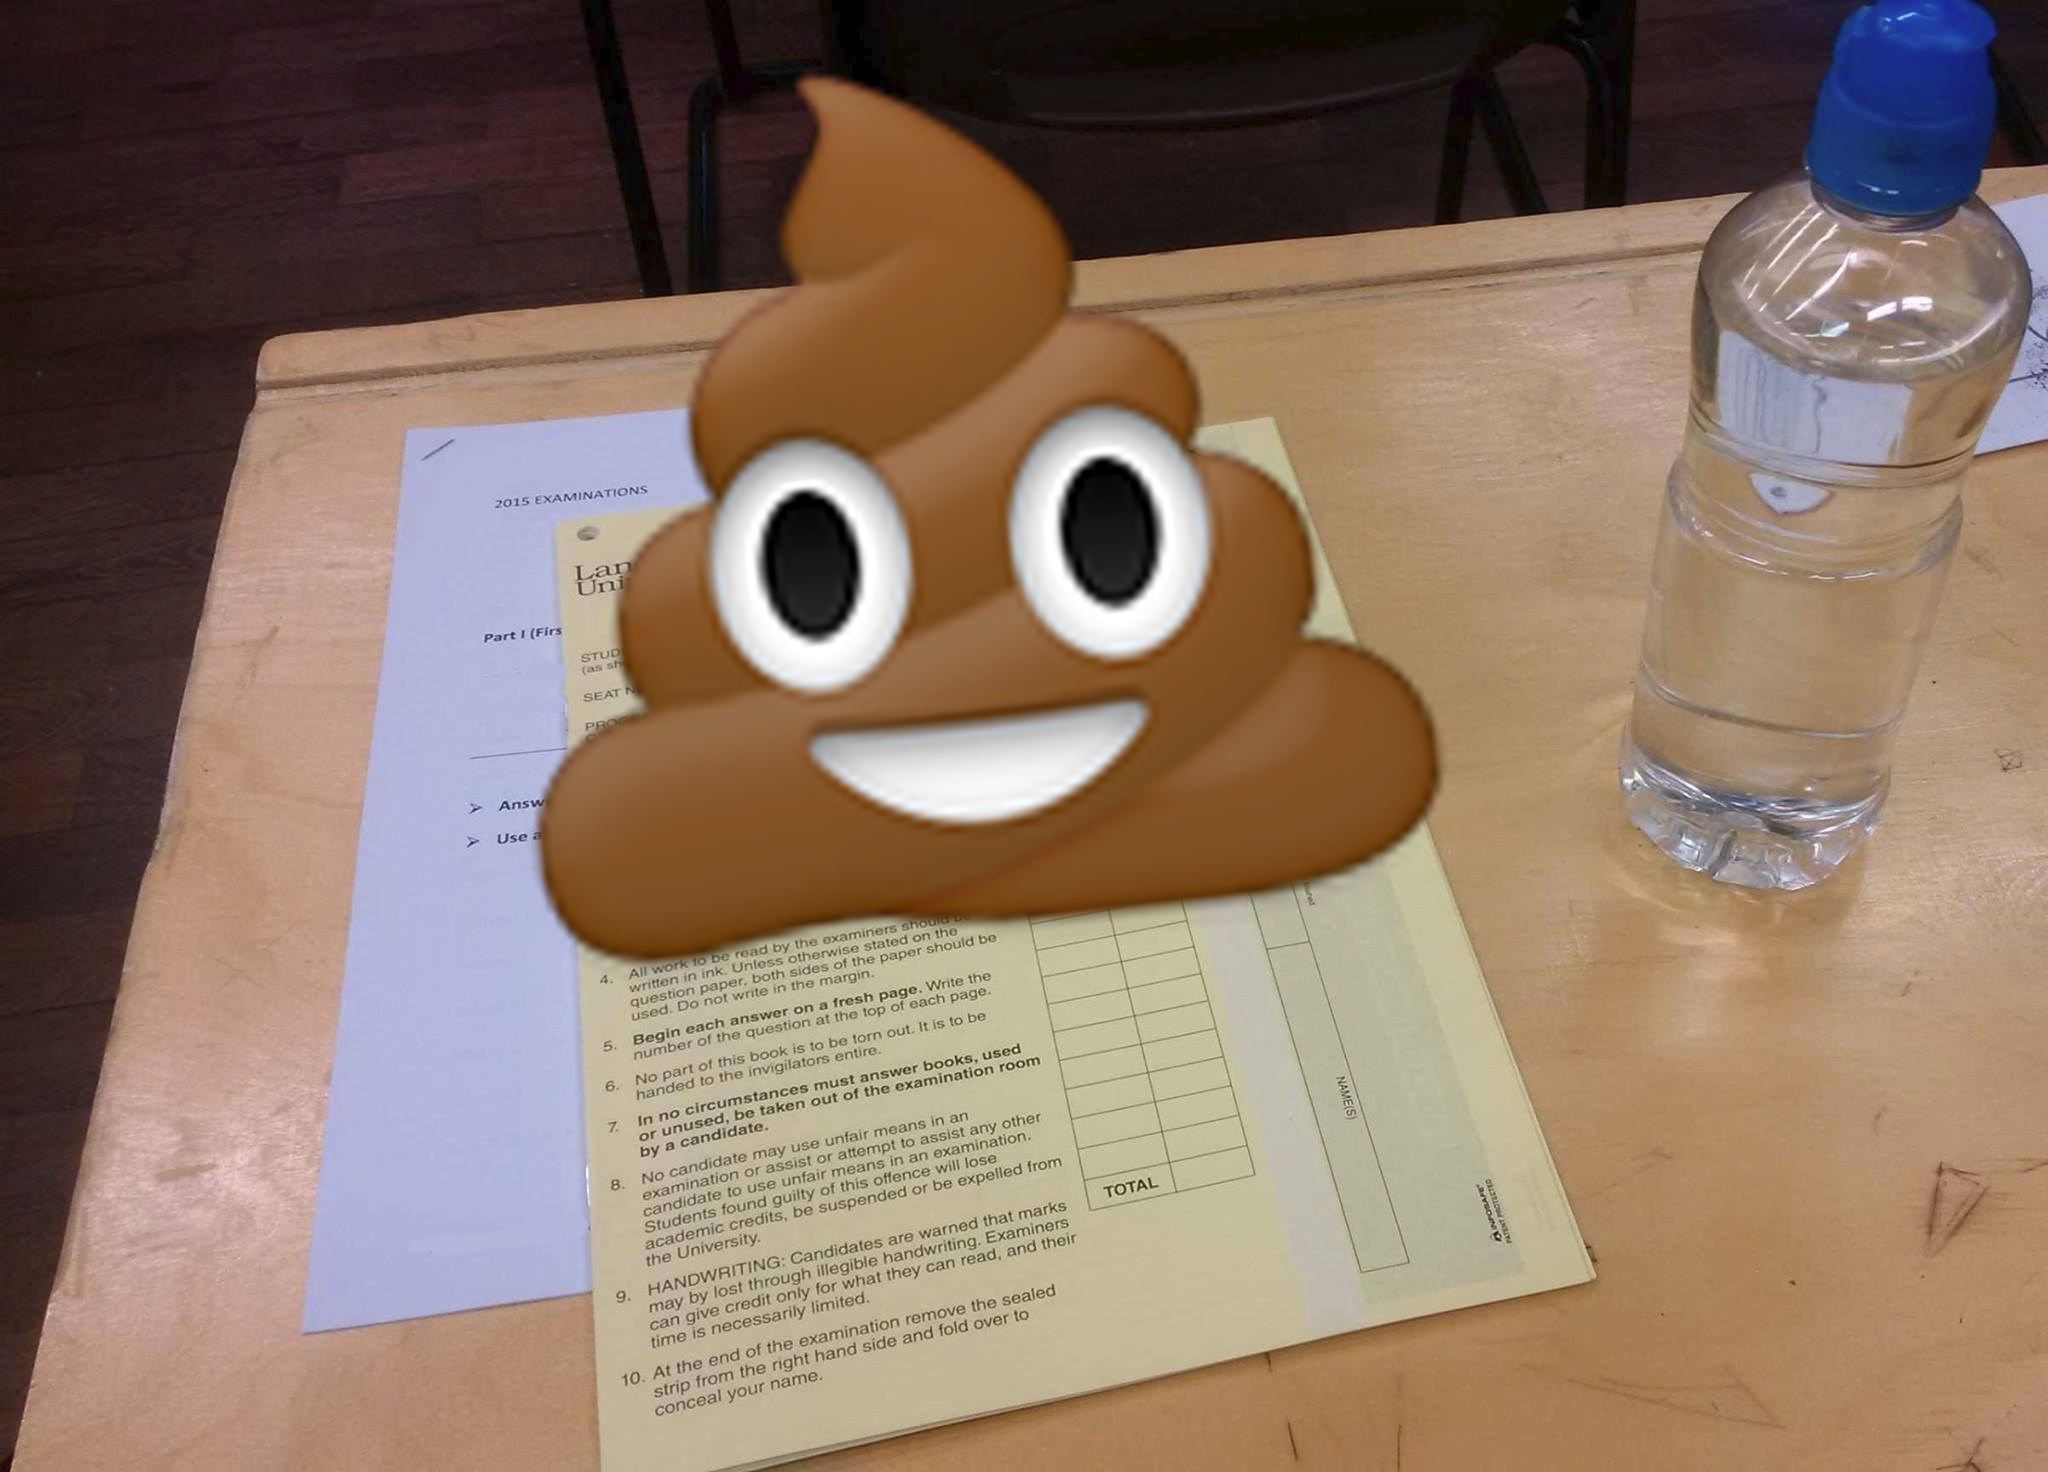 I unsurprisingly don't have many images of exams, so this one has a poo on it